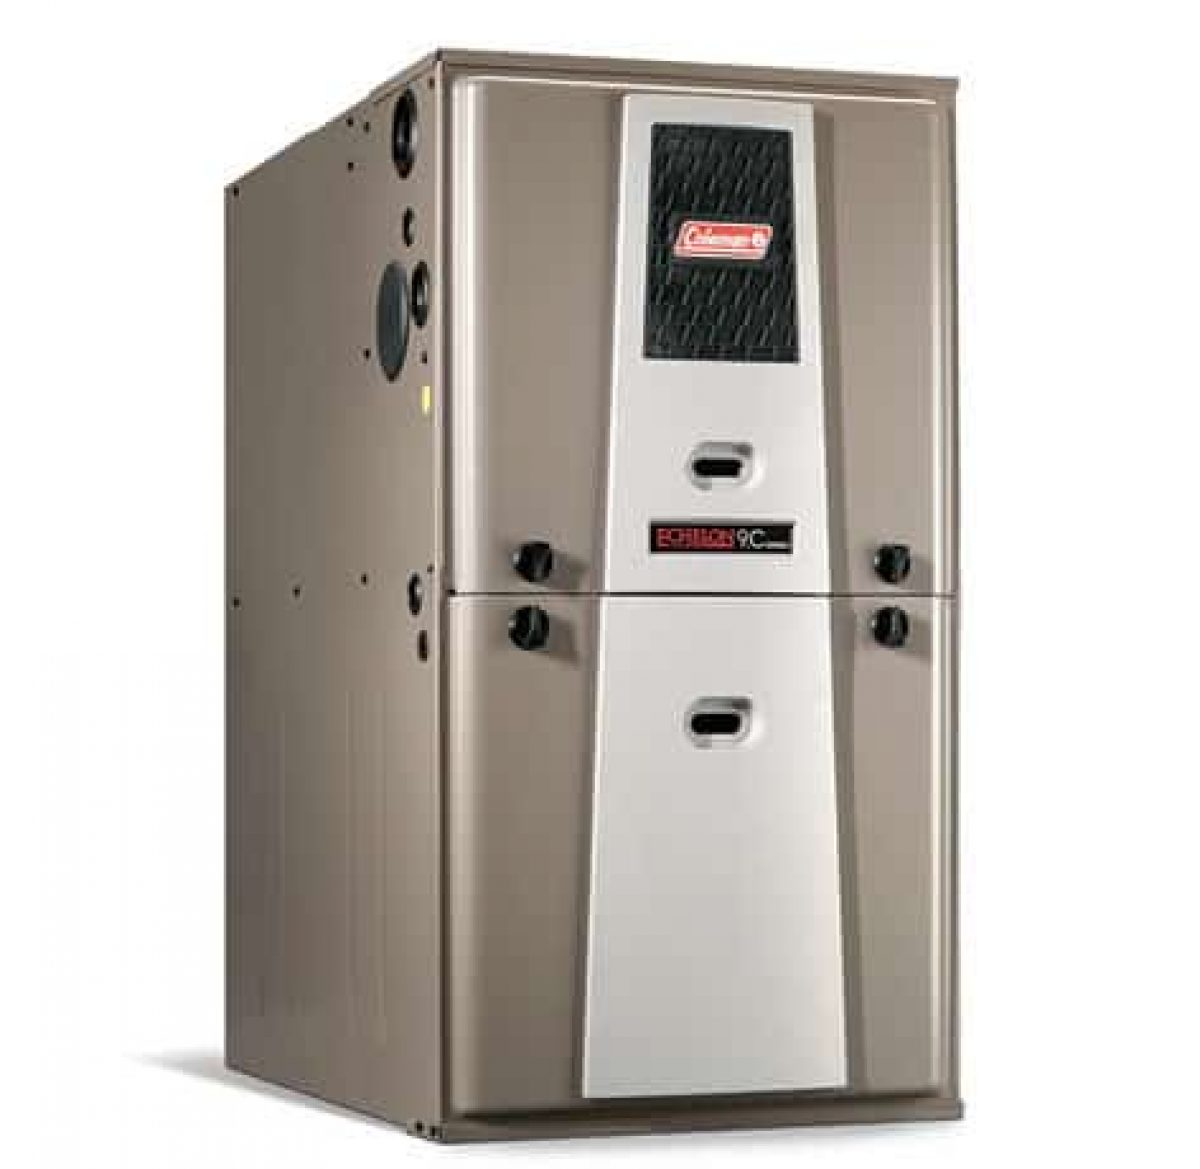 Coleman Gas Furnace Reviews #1 Quality Buyers Guide on duo therm camper furnace, compact natural gas furnace, rv furnace, coleman gas furnace,